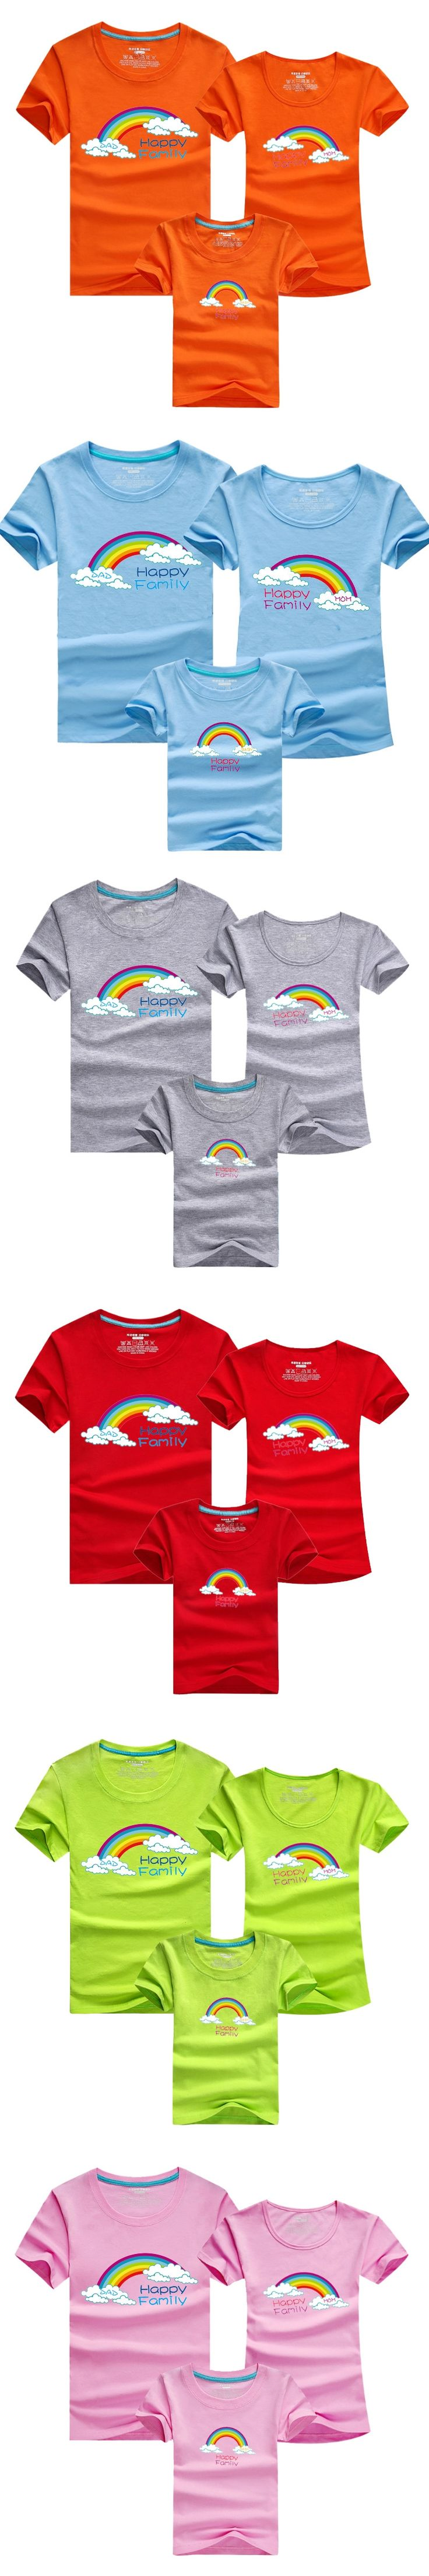 1 Piece Family Matching Clothes T Shirts 11 Colors Solid SummerFamily Look Father & Mother & Kids matching family clothes